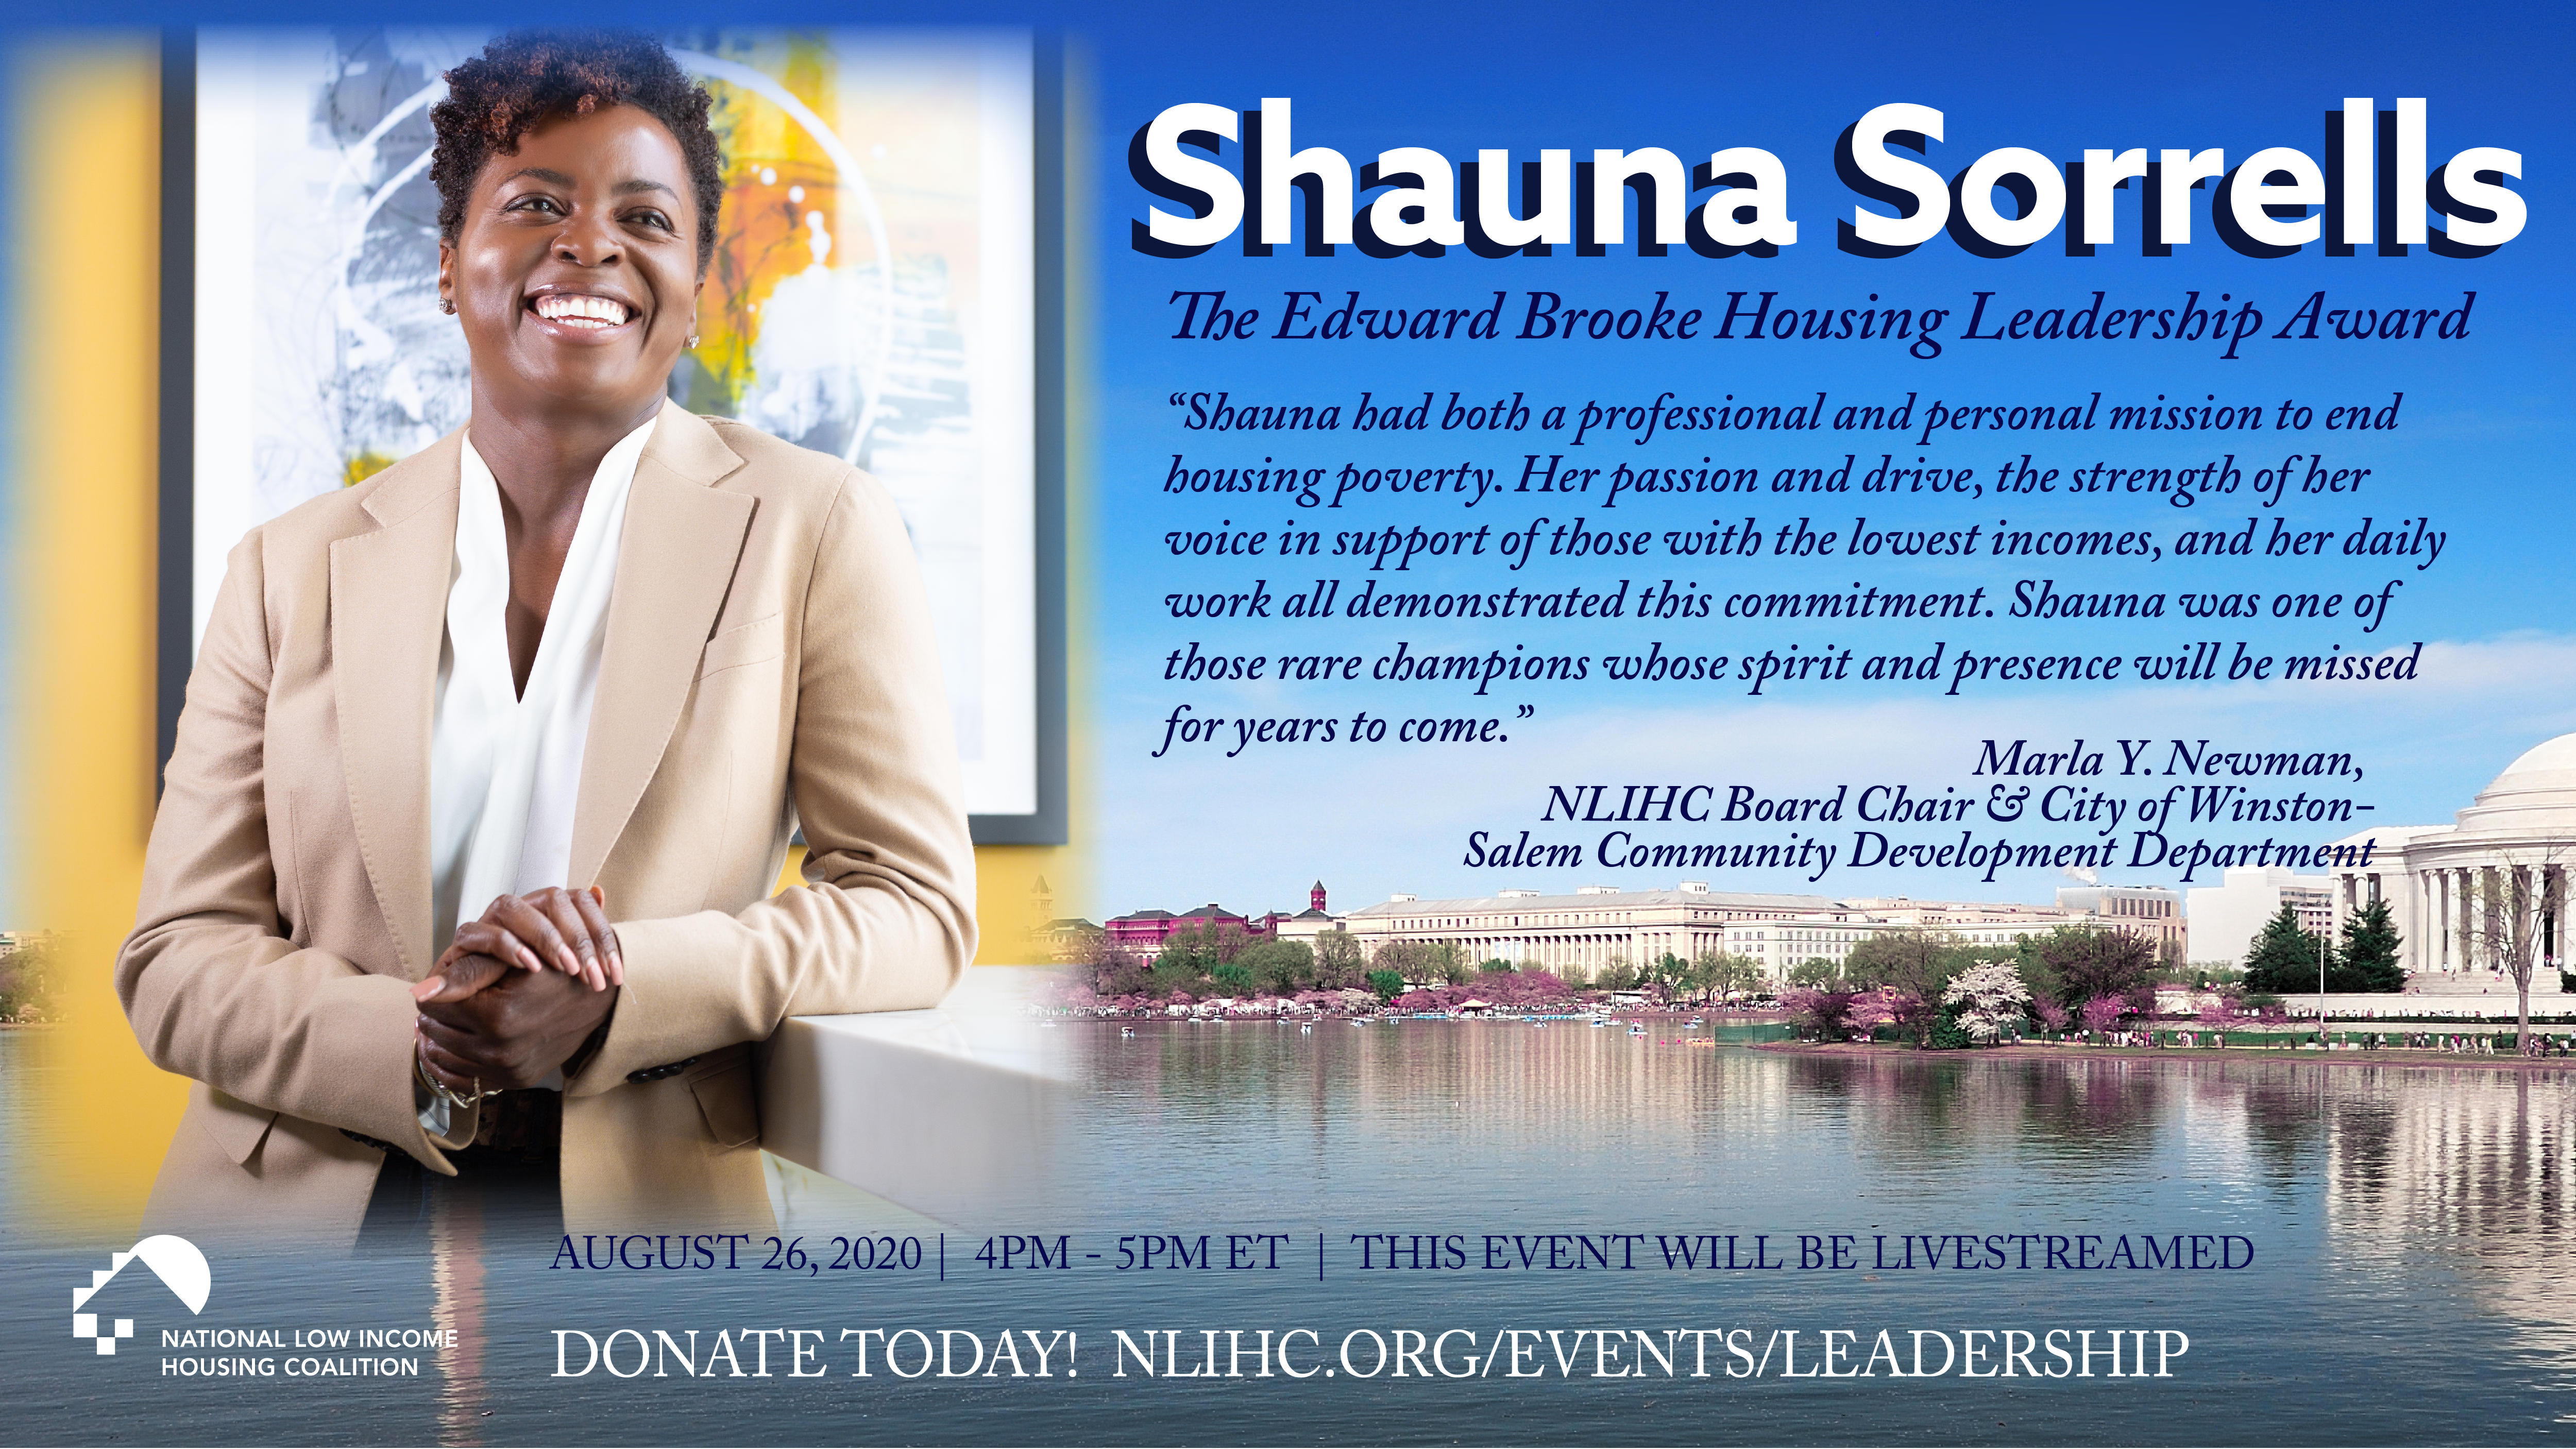 Image of Shauna Sorrells with Quote from colleague; background is a wide shot of the National Mall.